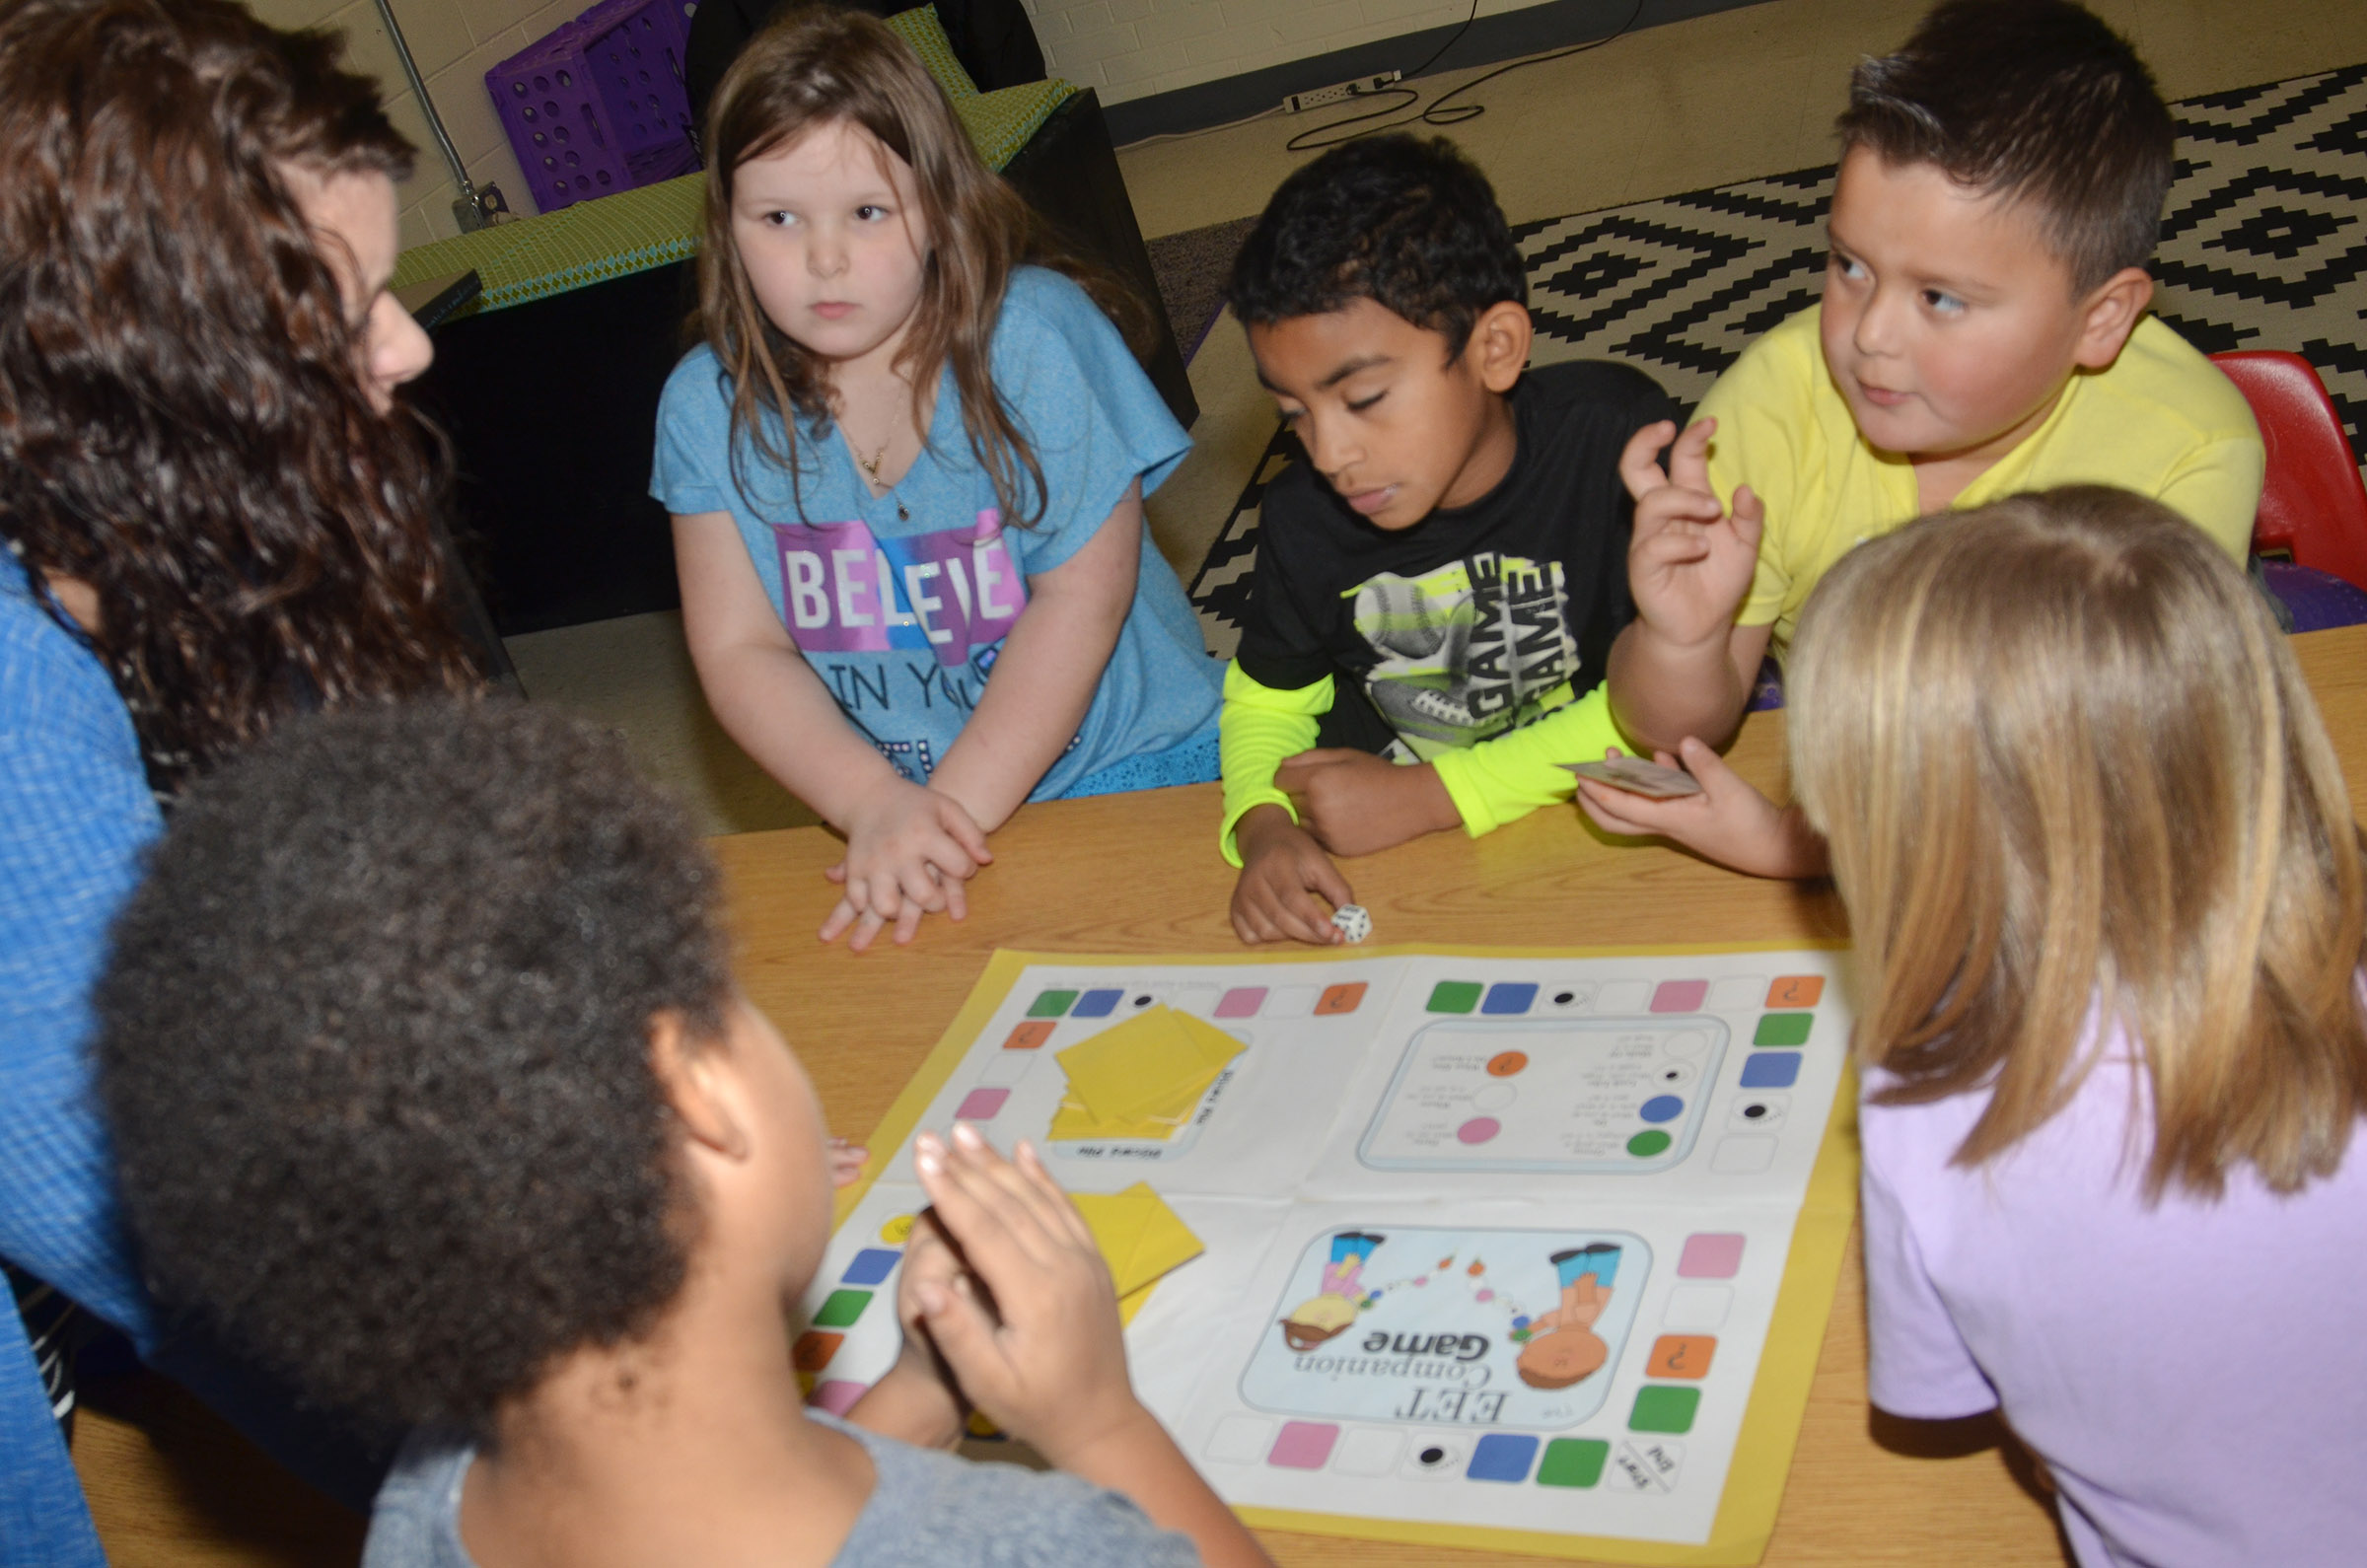 CES Explorers teacher Miriah Cox, at left, helps first-graders, from left, Kierra Maupin, Enoch Smith and Alex Mixtega, and their classmates, play a comprehension game.